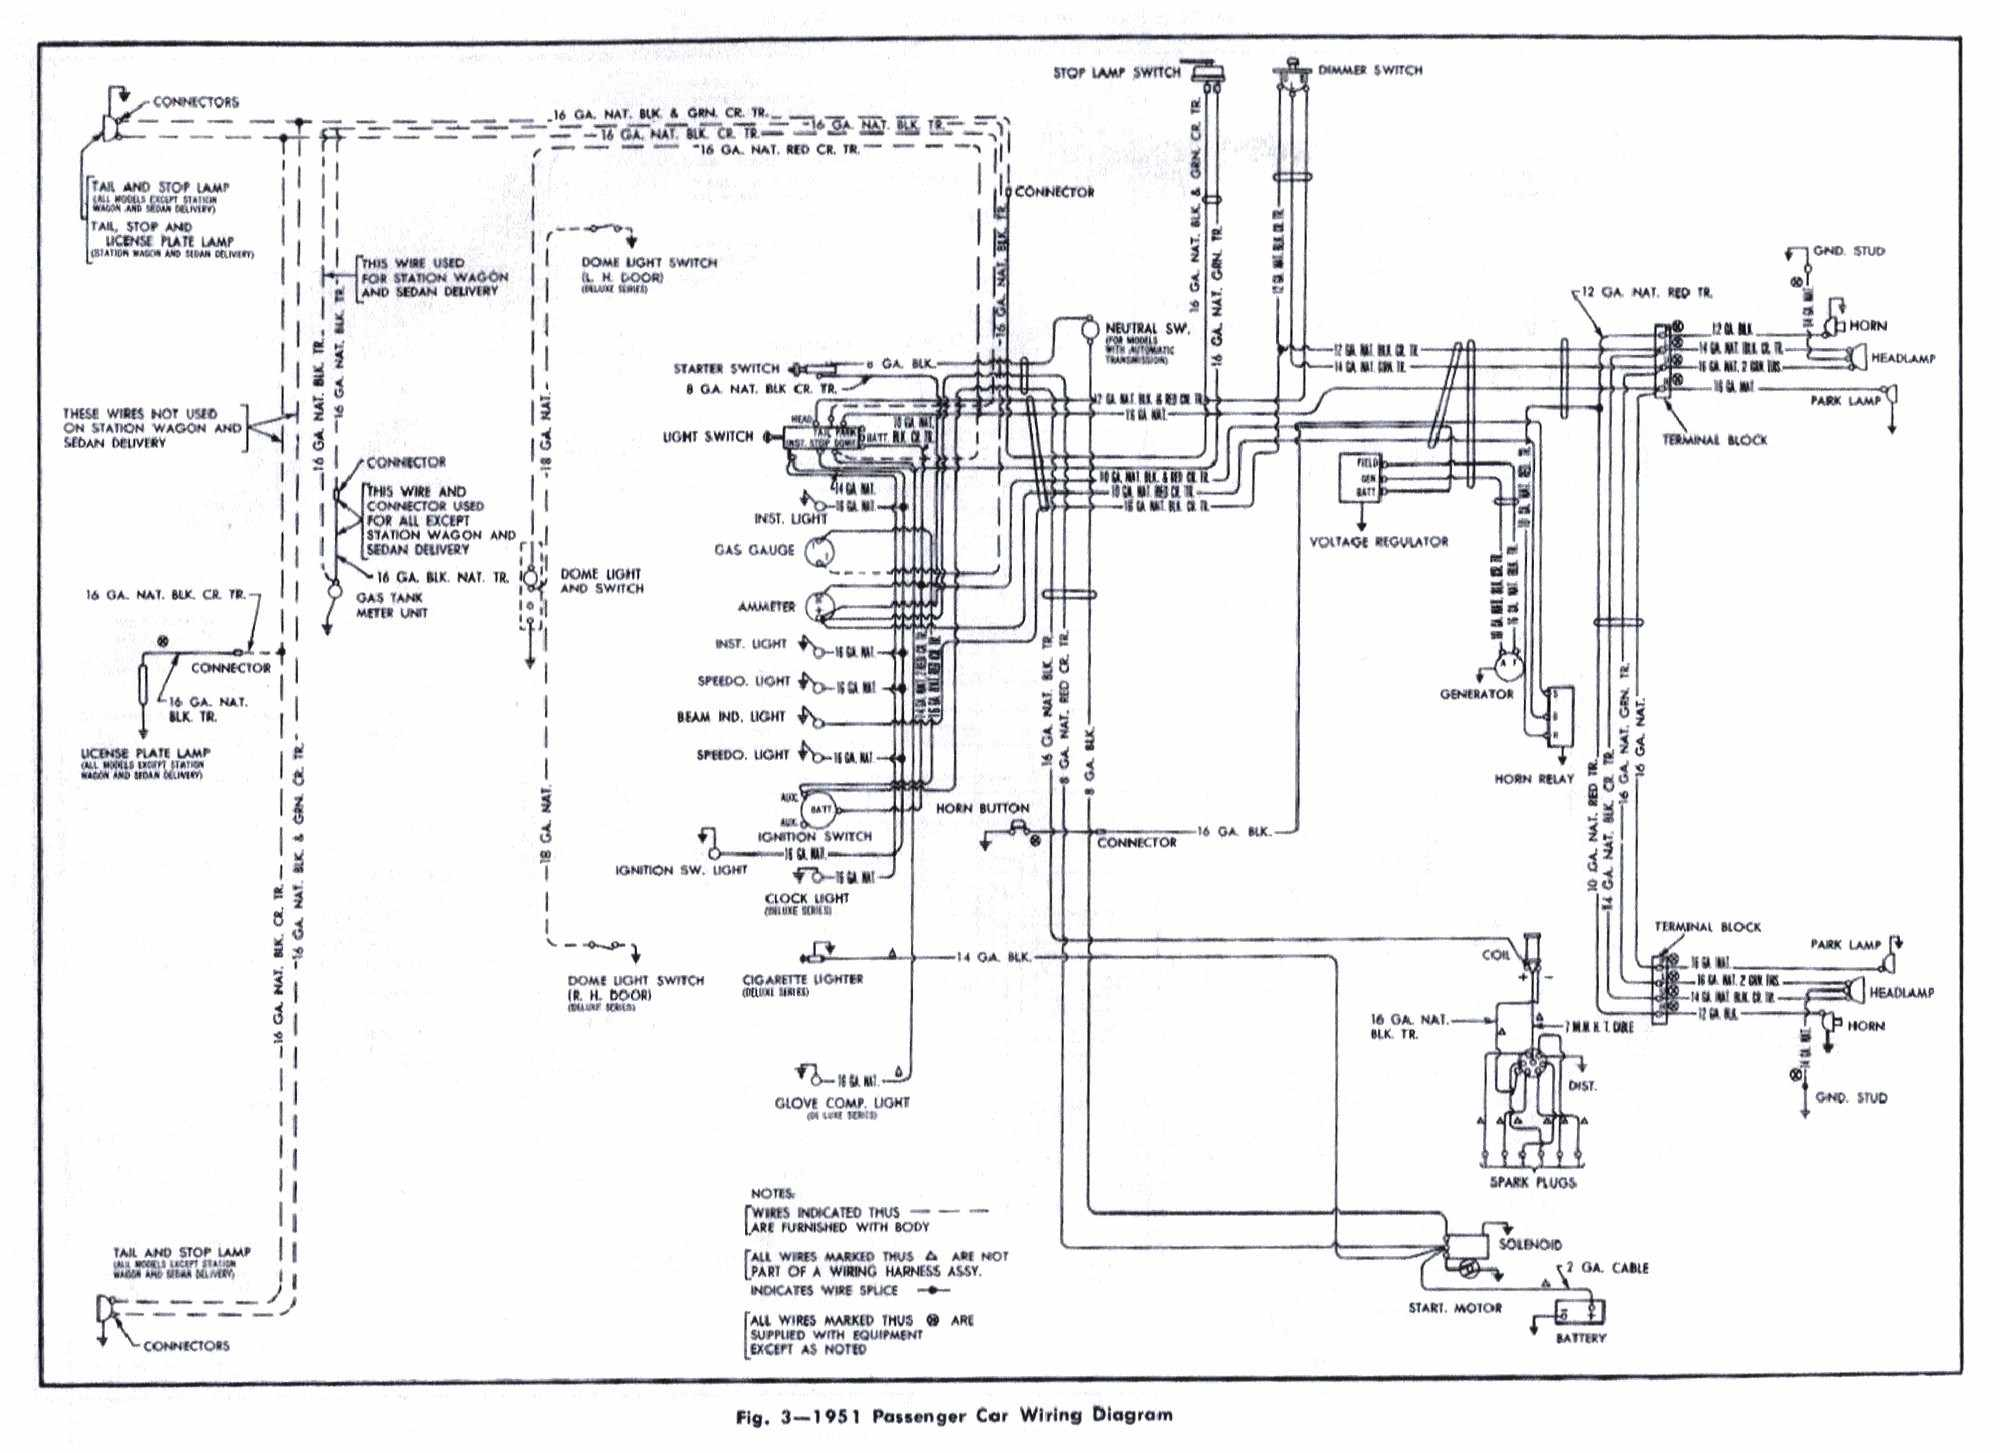 350 Clk Electrical Wiring Diagram Diagrams Automotive Packard Tagged Circuit